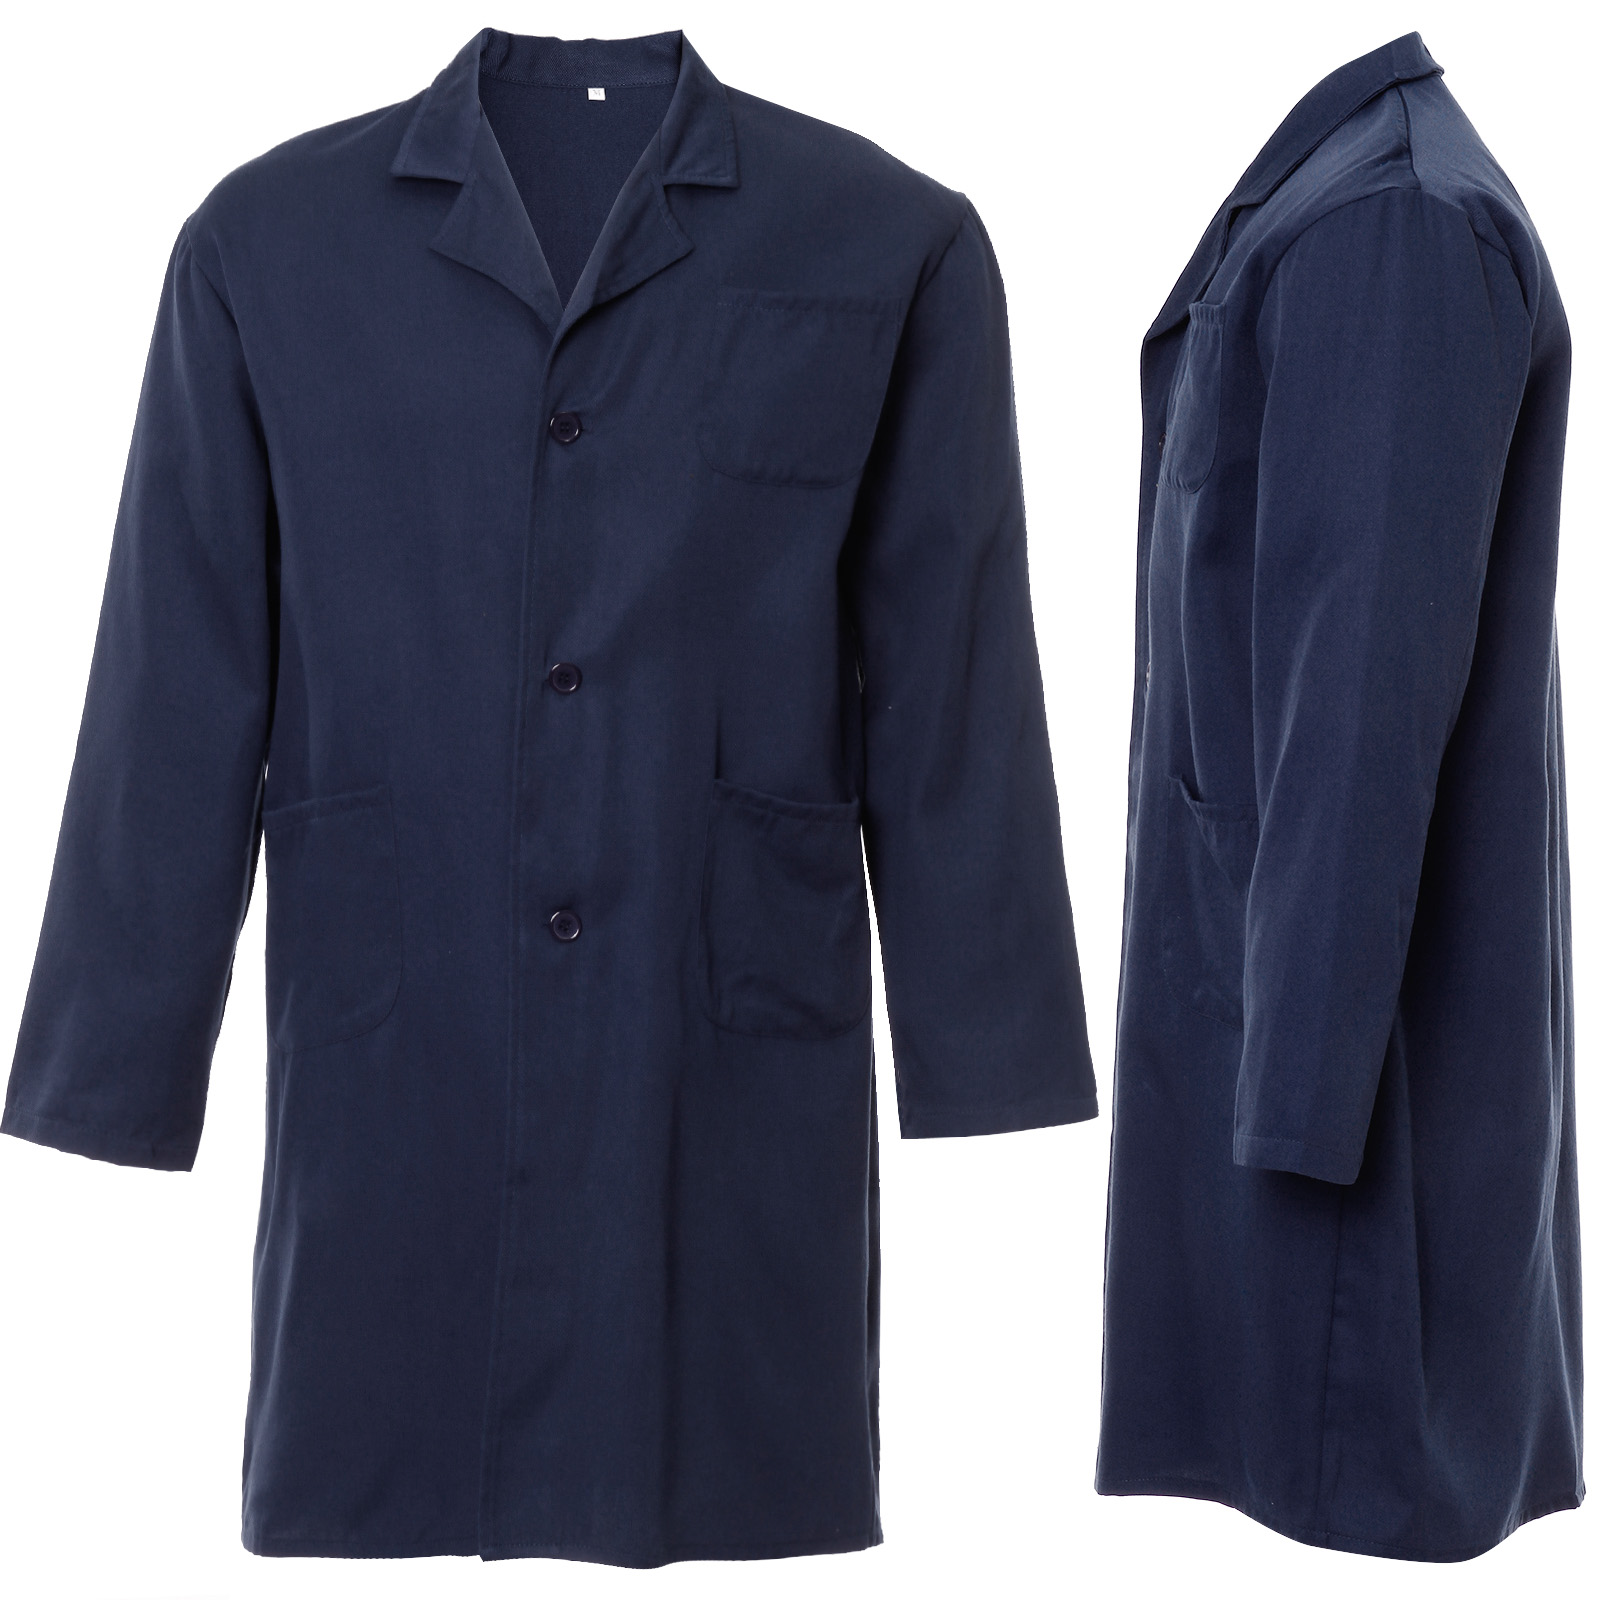 Uniform Lab Coat 6